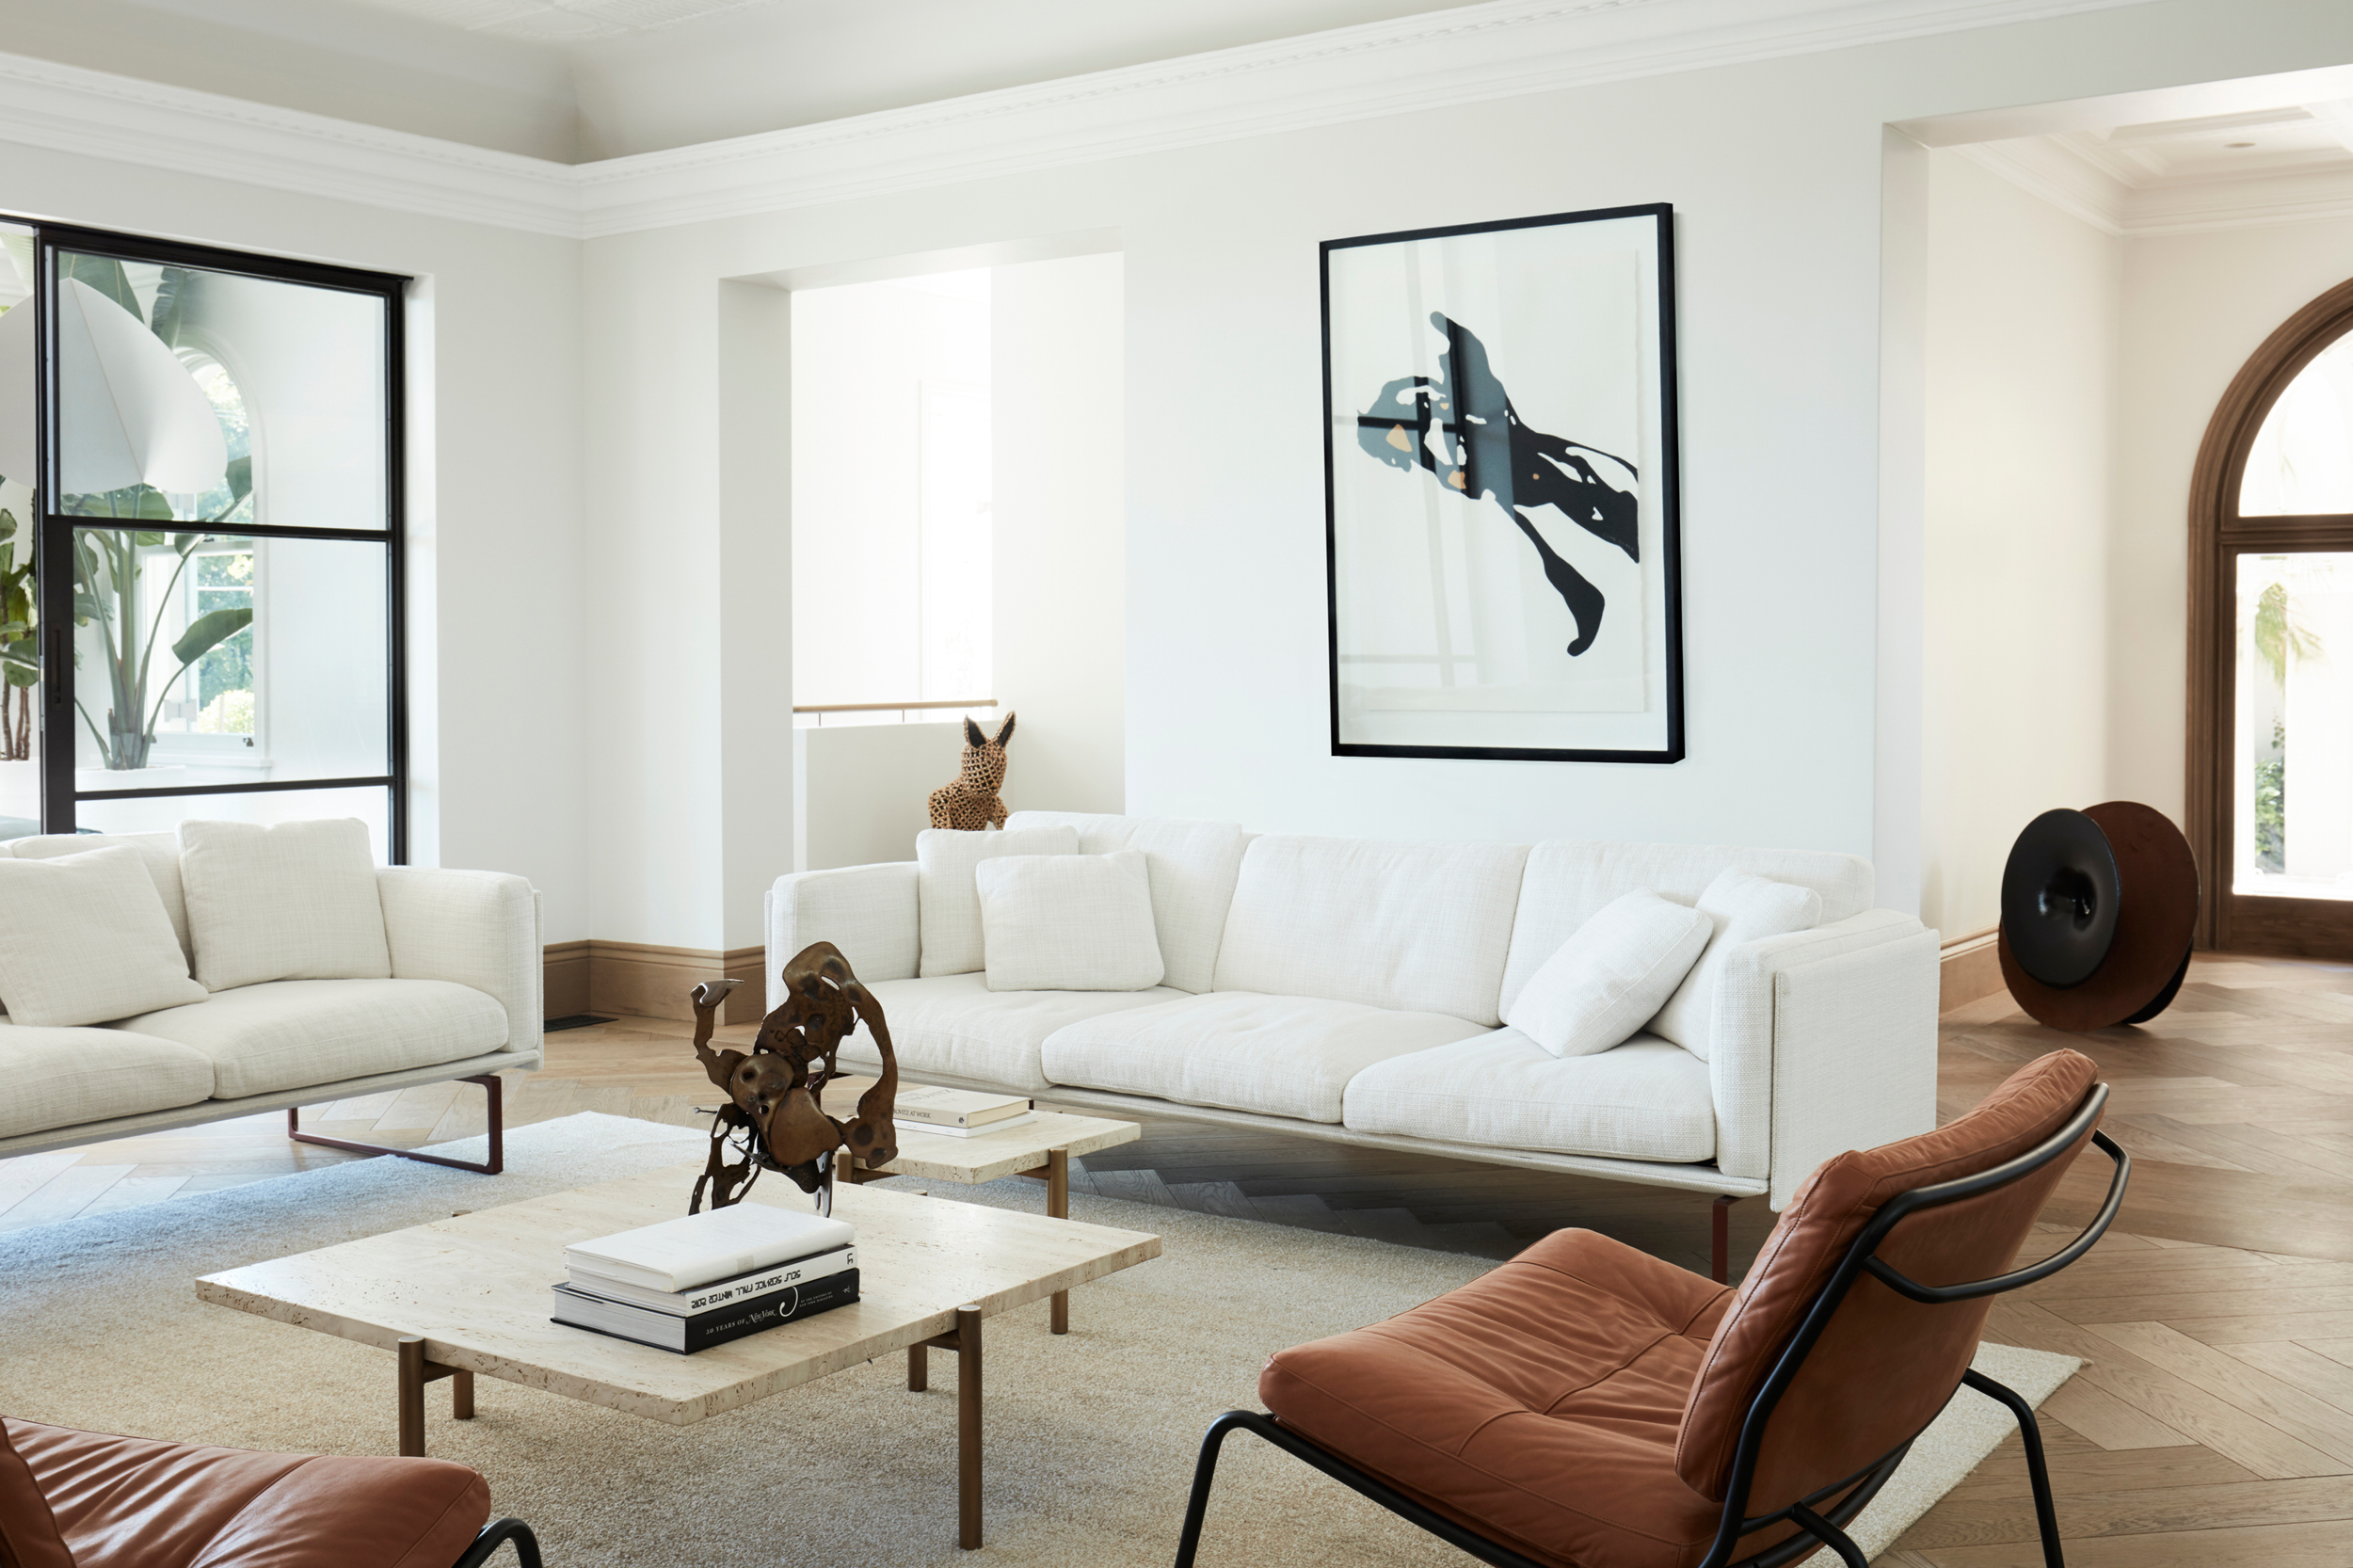 How To Buy The Right Sofa (and a Roundup of Some of Our Favorites) - Bobby Berk